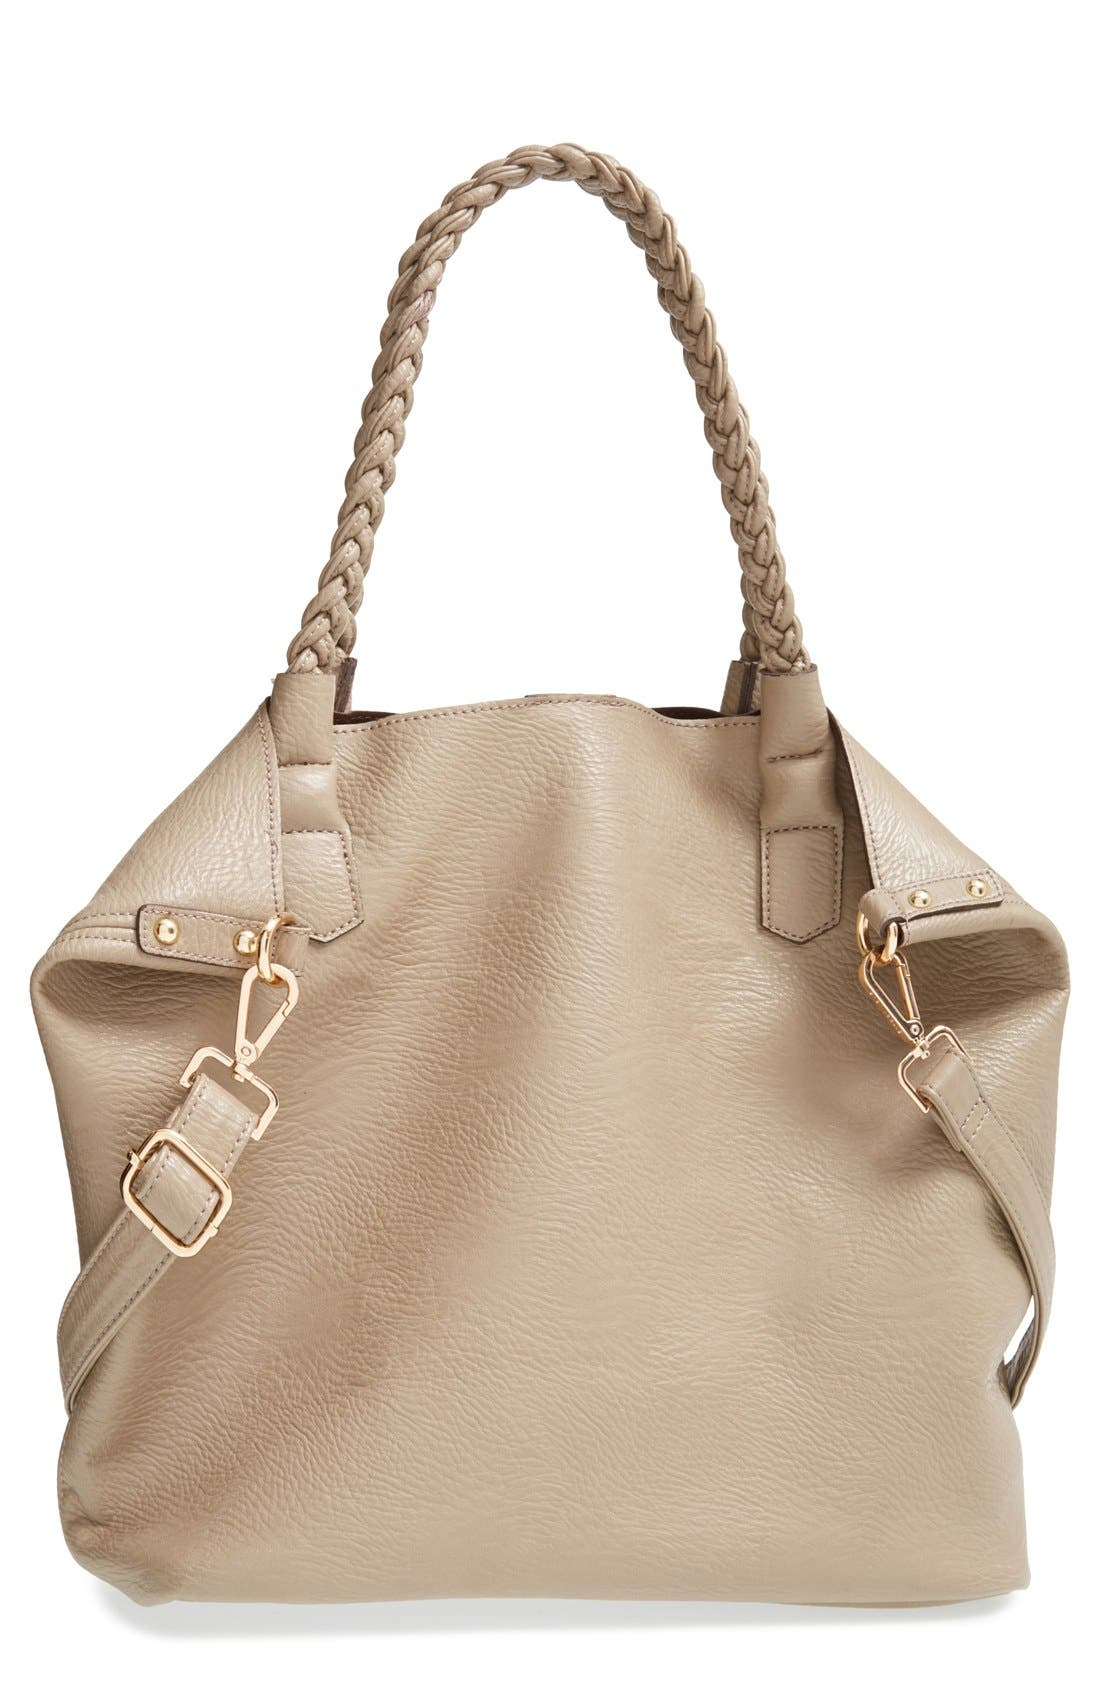 Alternate Image 1 Selected - Street Level Slouchy Faux Leather Tote with Pouch